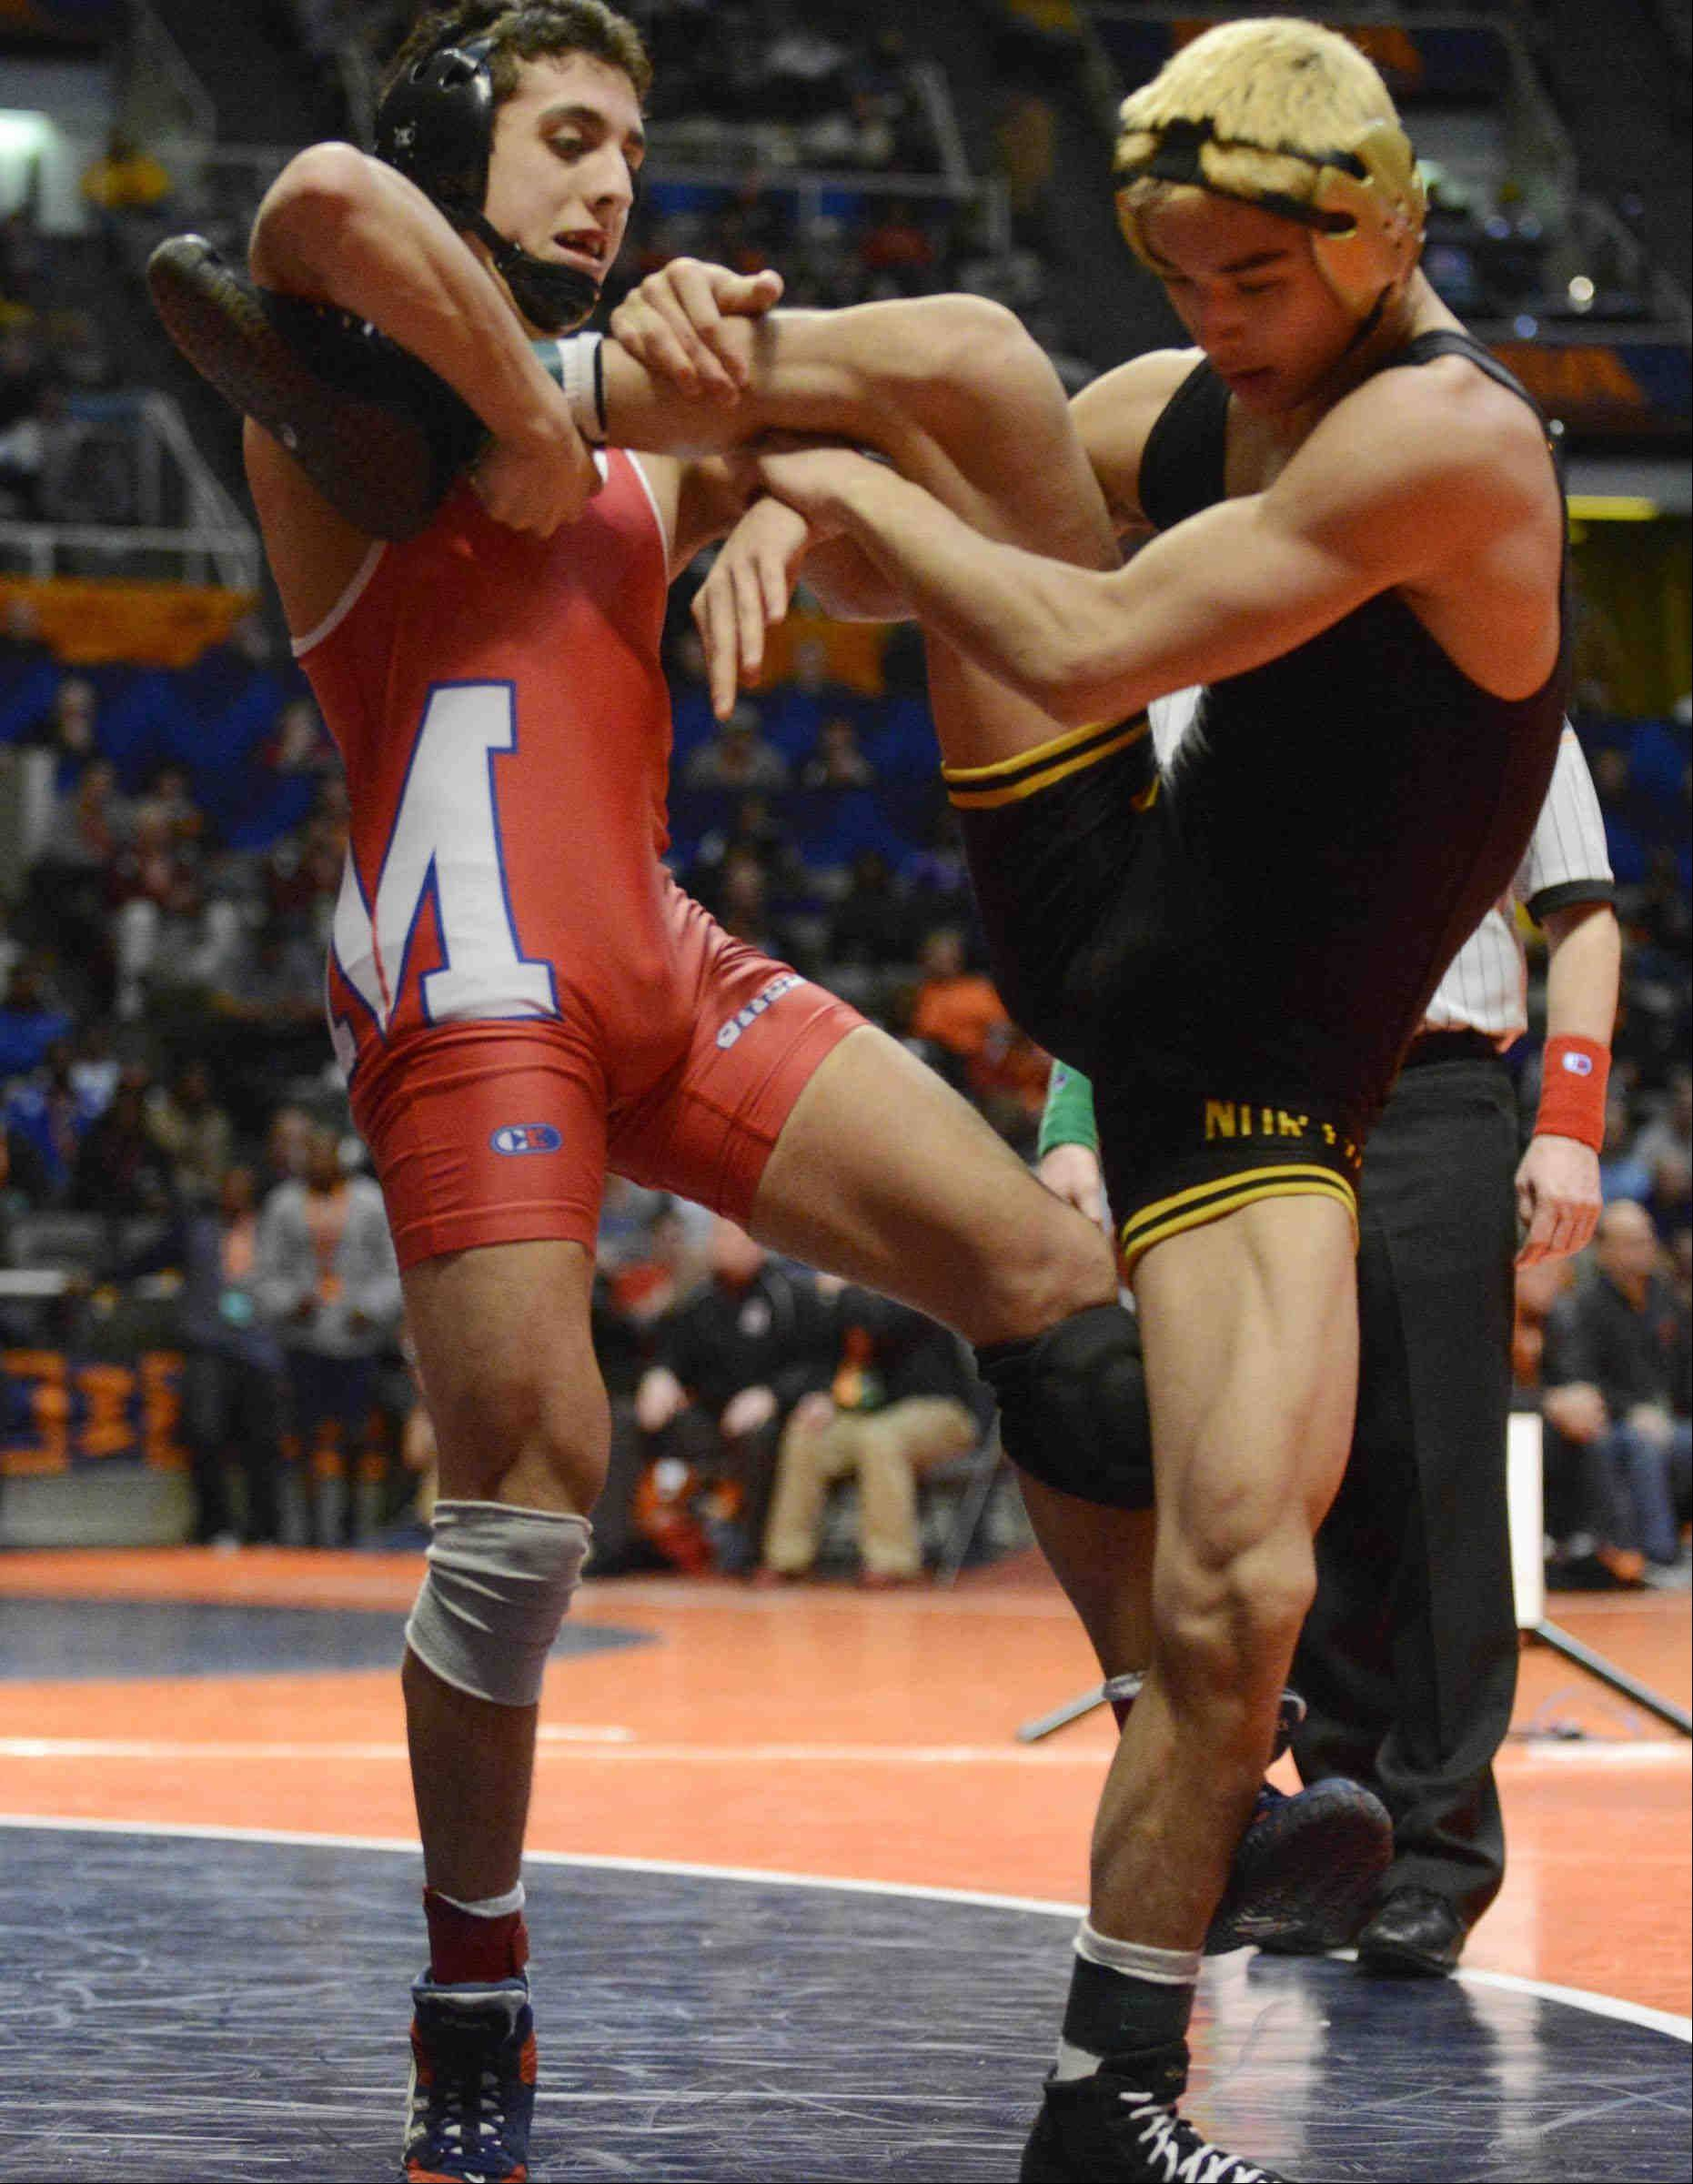 Marmion Adademy's Johnny Jimenez wrestles Jon Marmelejo of Glenbard North Friday in the 120-pound Class 3A IHSA semifinal wrestling match at Assembly Hall in Champaign. Jimenez won.